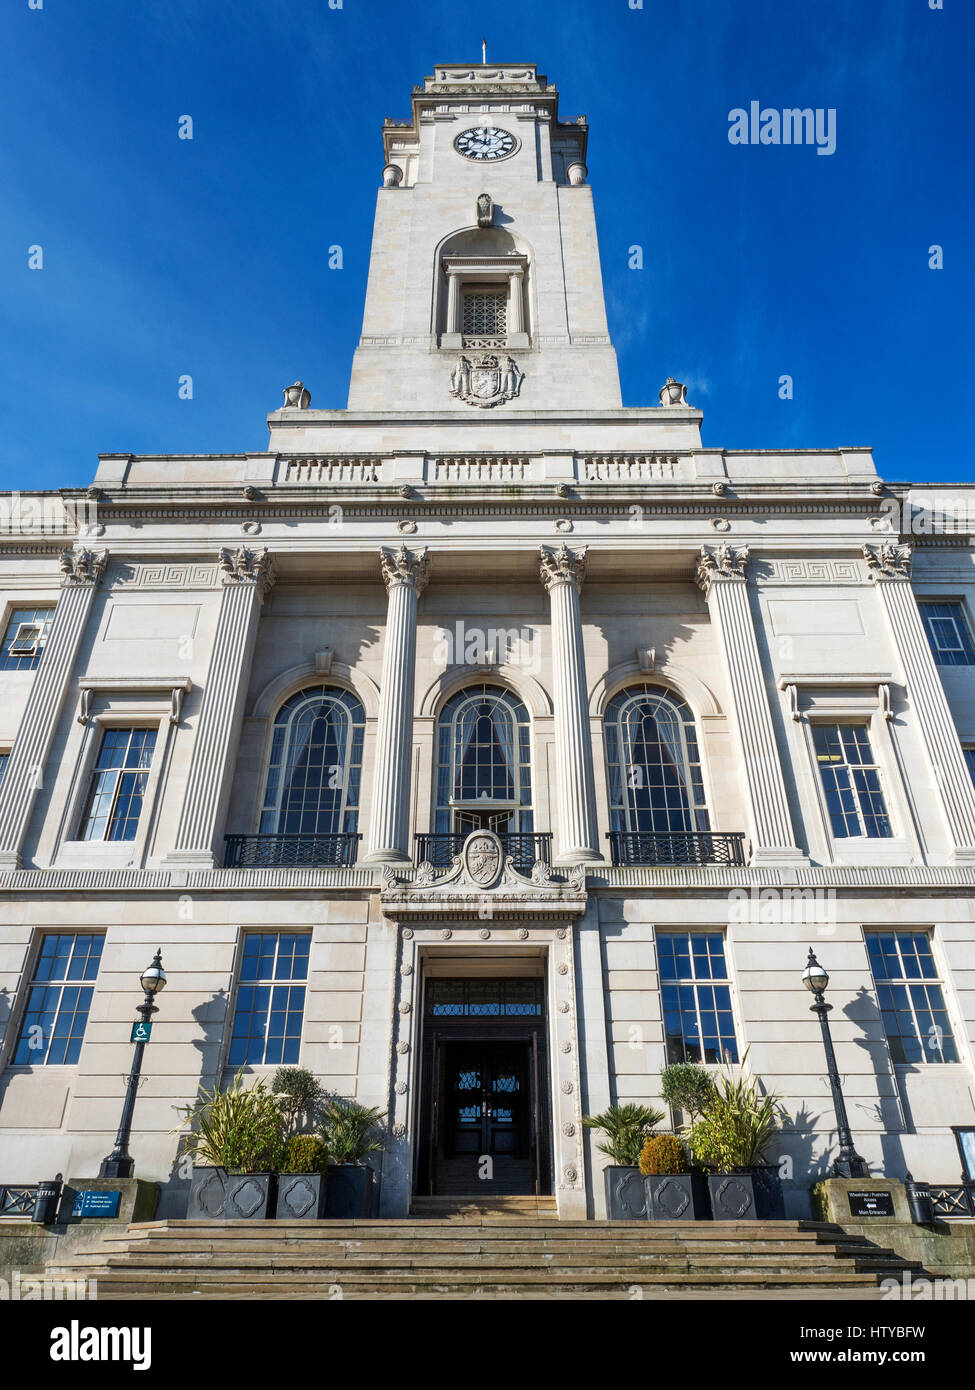 Neoclassical Columns at the Town Hall Building in Barnsley South Yorkshire England - Stock Image